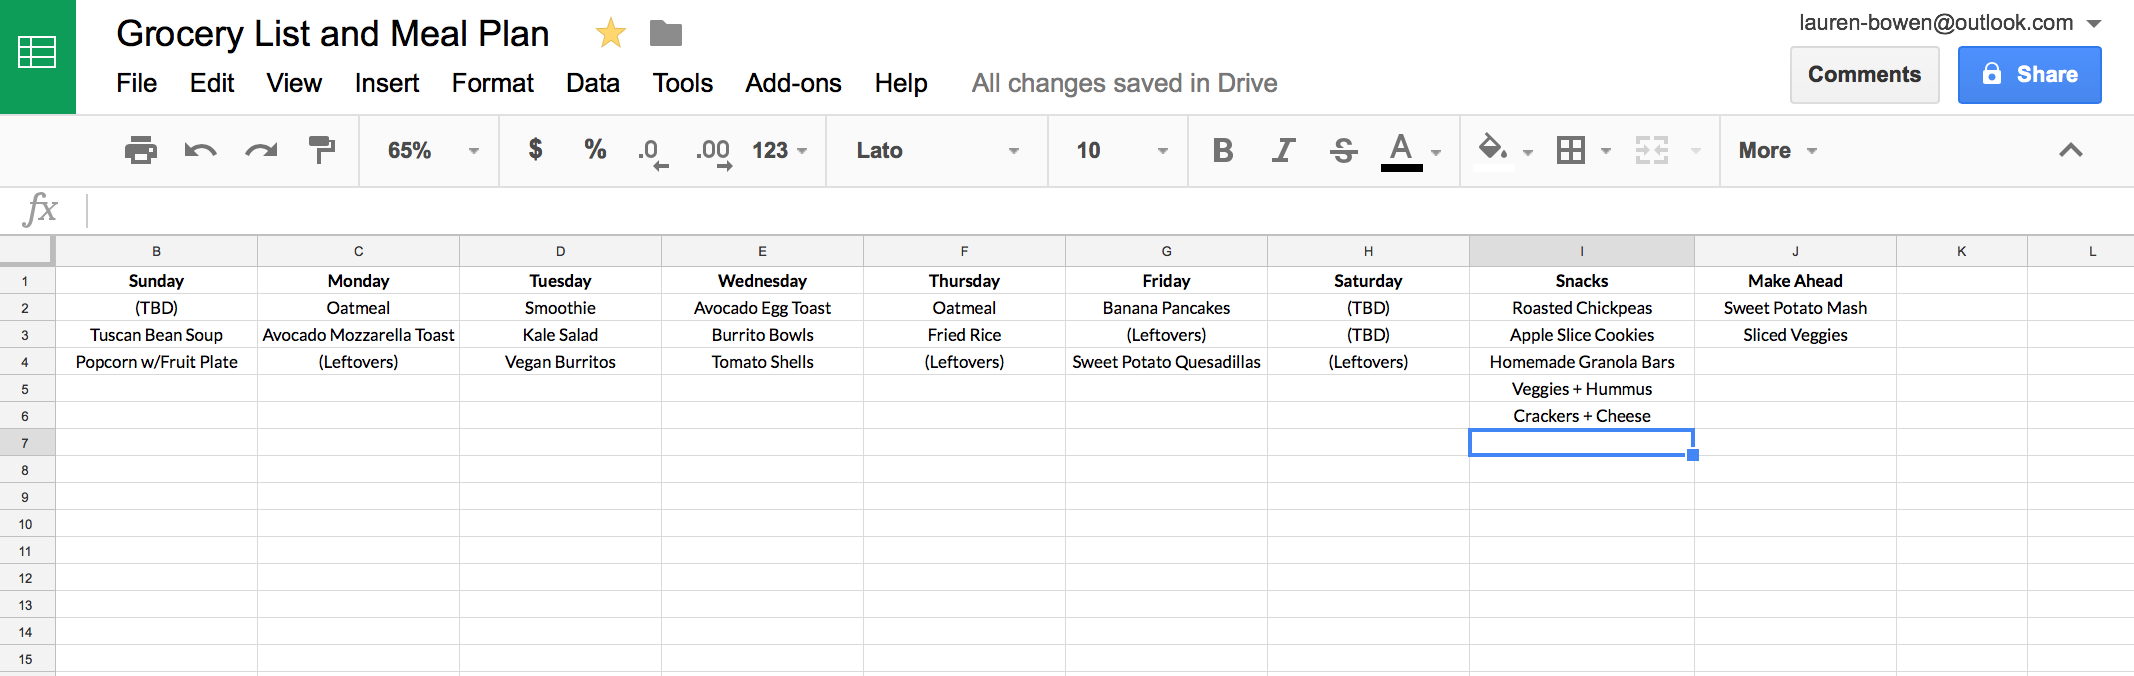 Spending Spreadsheet Google Docs Pertaining To How I Use Google Sheets For Grocery Shopping And Meal Planning